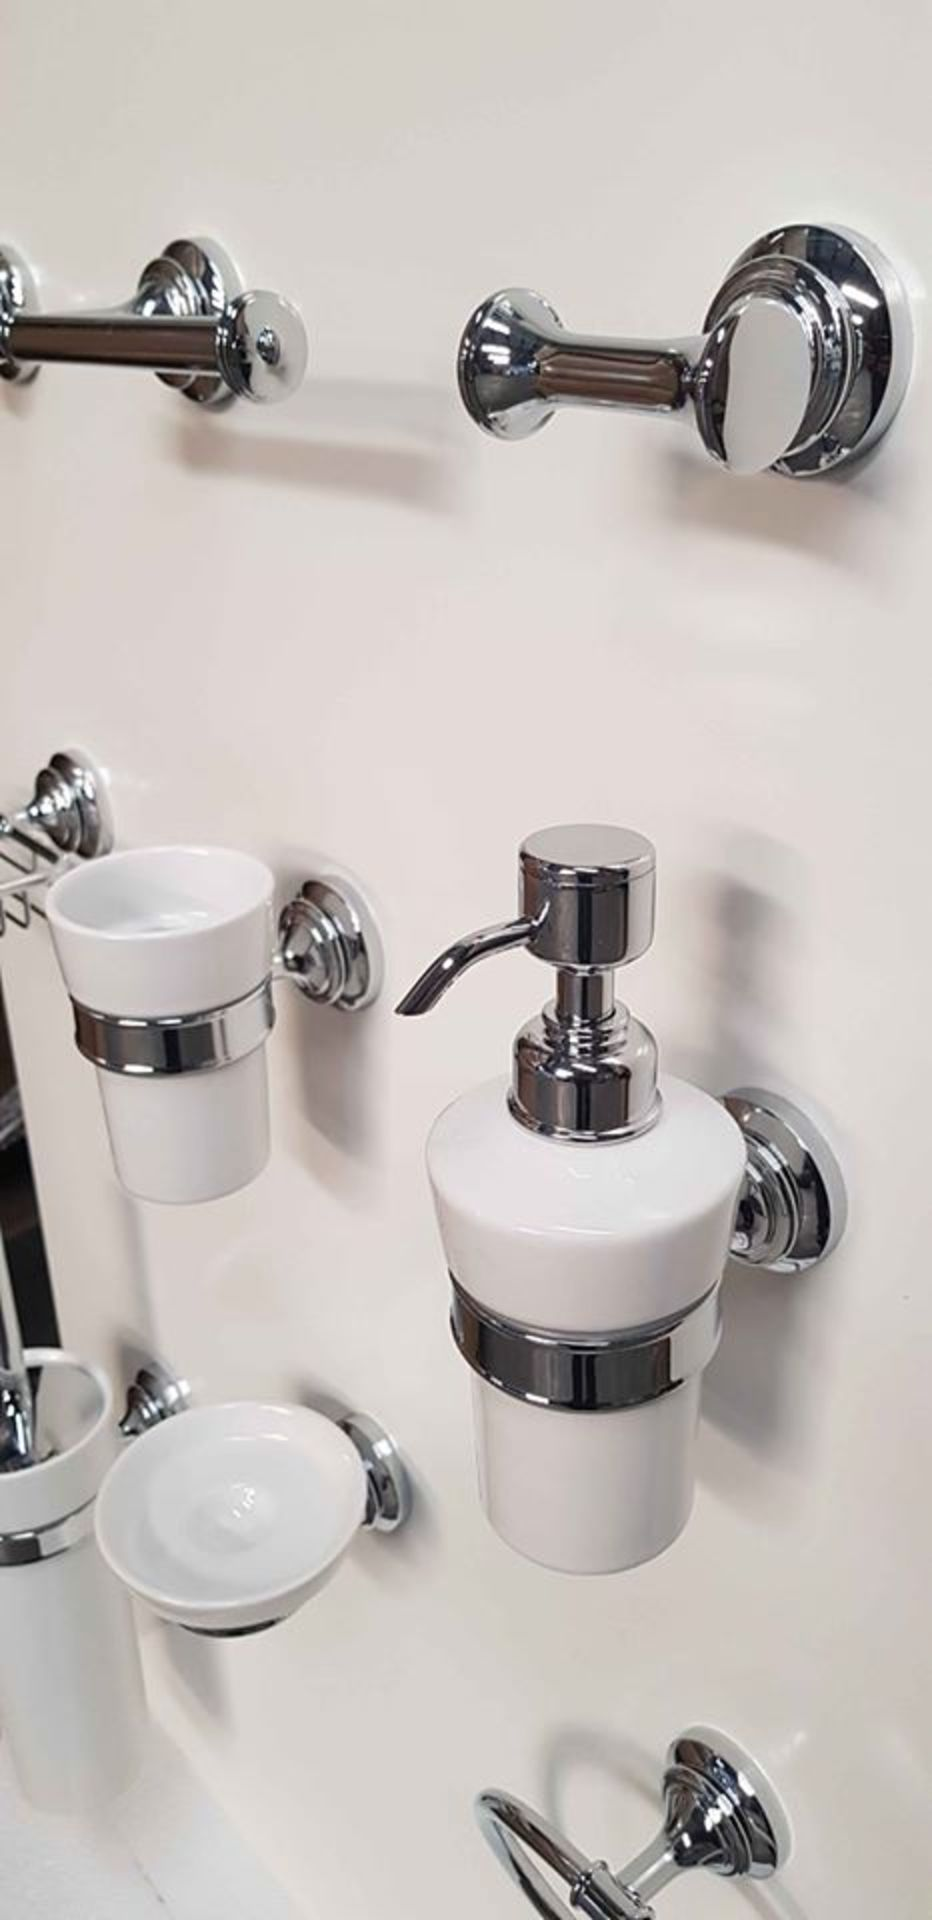 Lot 15 - Transition 12 Piece, very high quality, bathroom accessory set in polished chrome & ceramic finish.